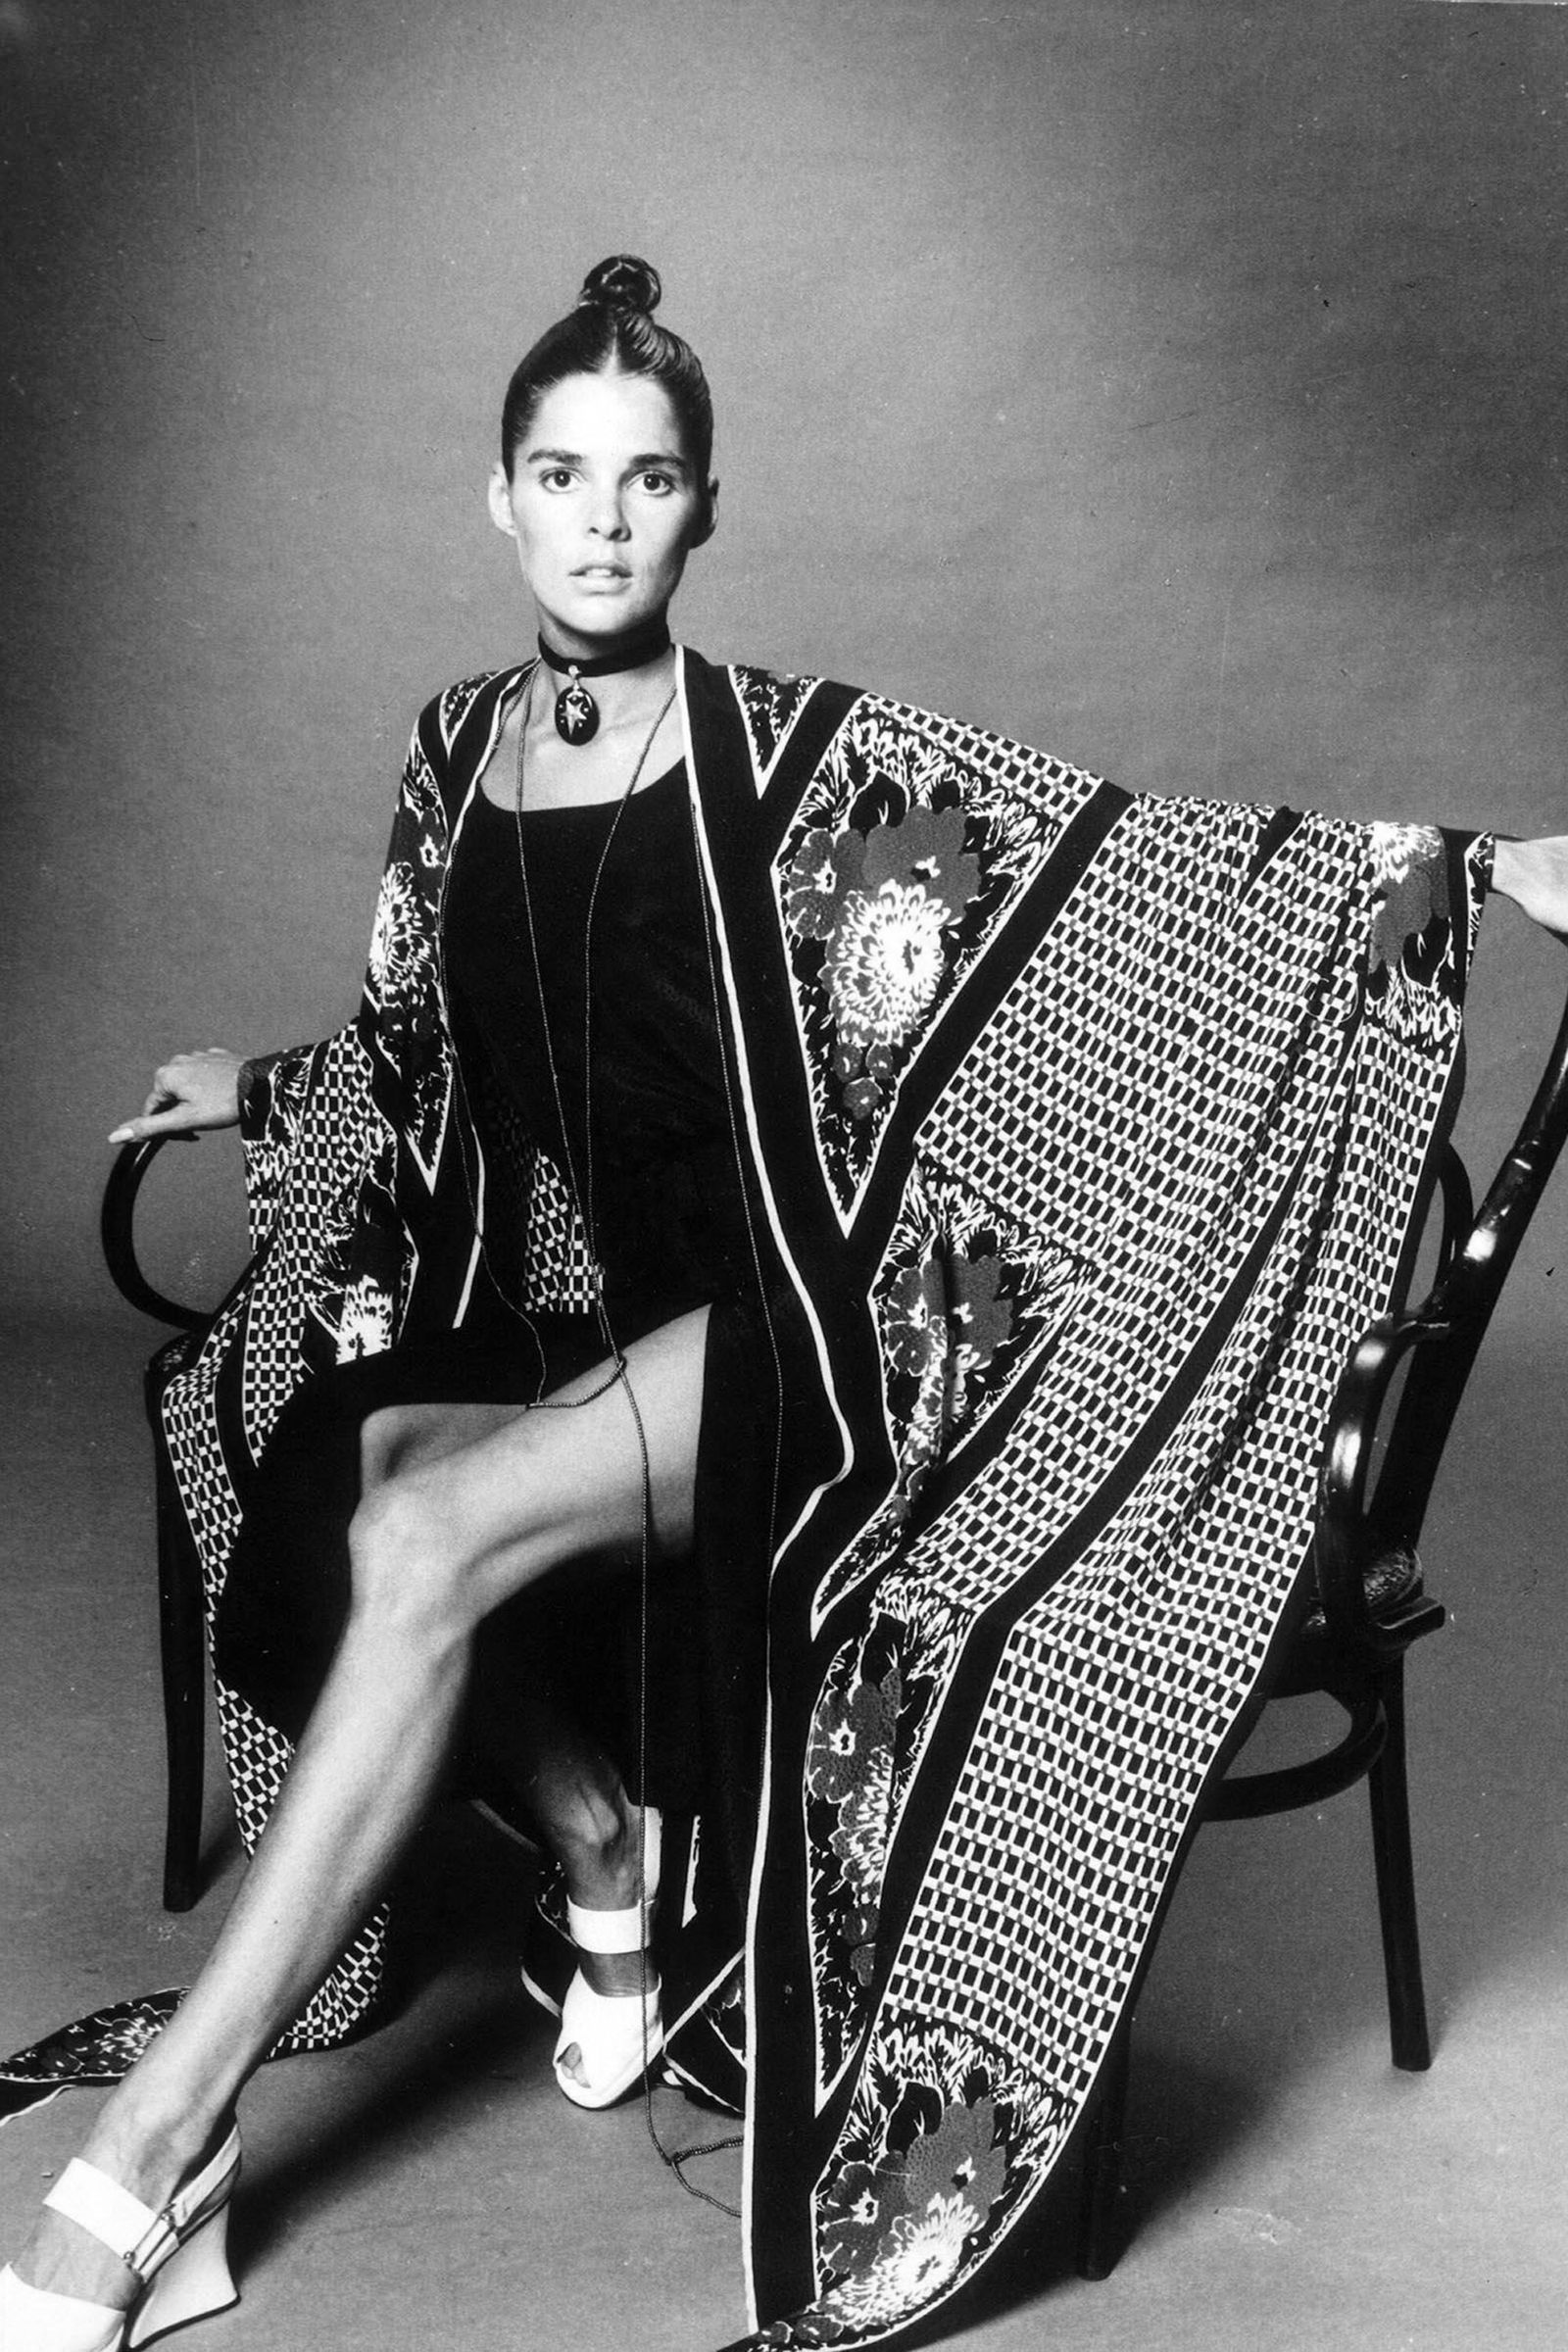 Ali MacGraw nude (57 photos), Tits, Cleavage, Boobs, panties 2018